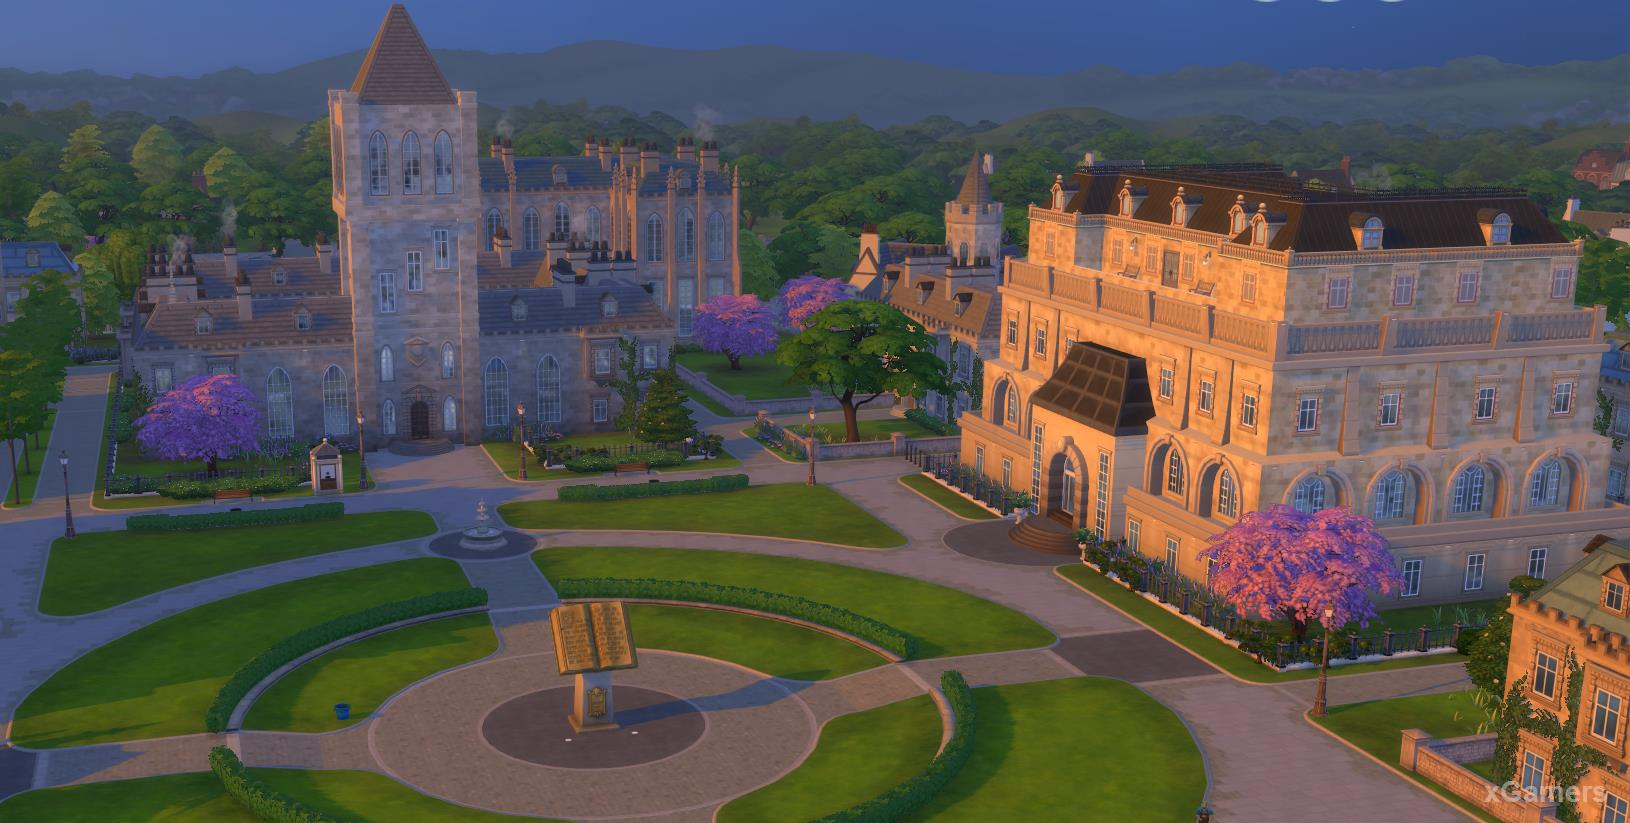 Britechester University Area - the Sims 4